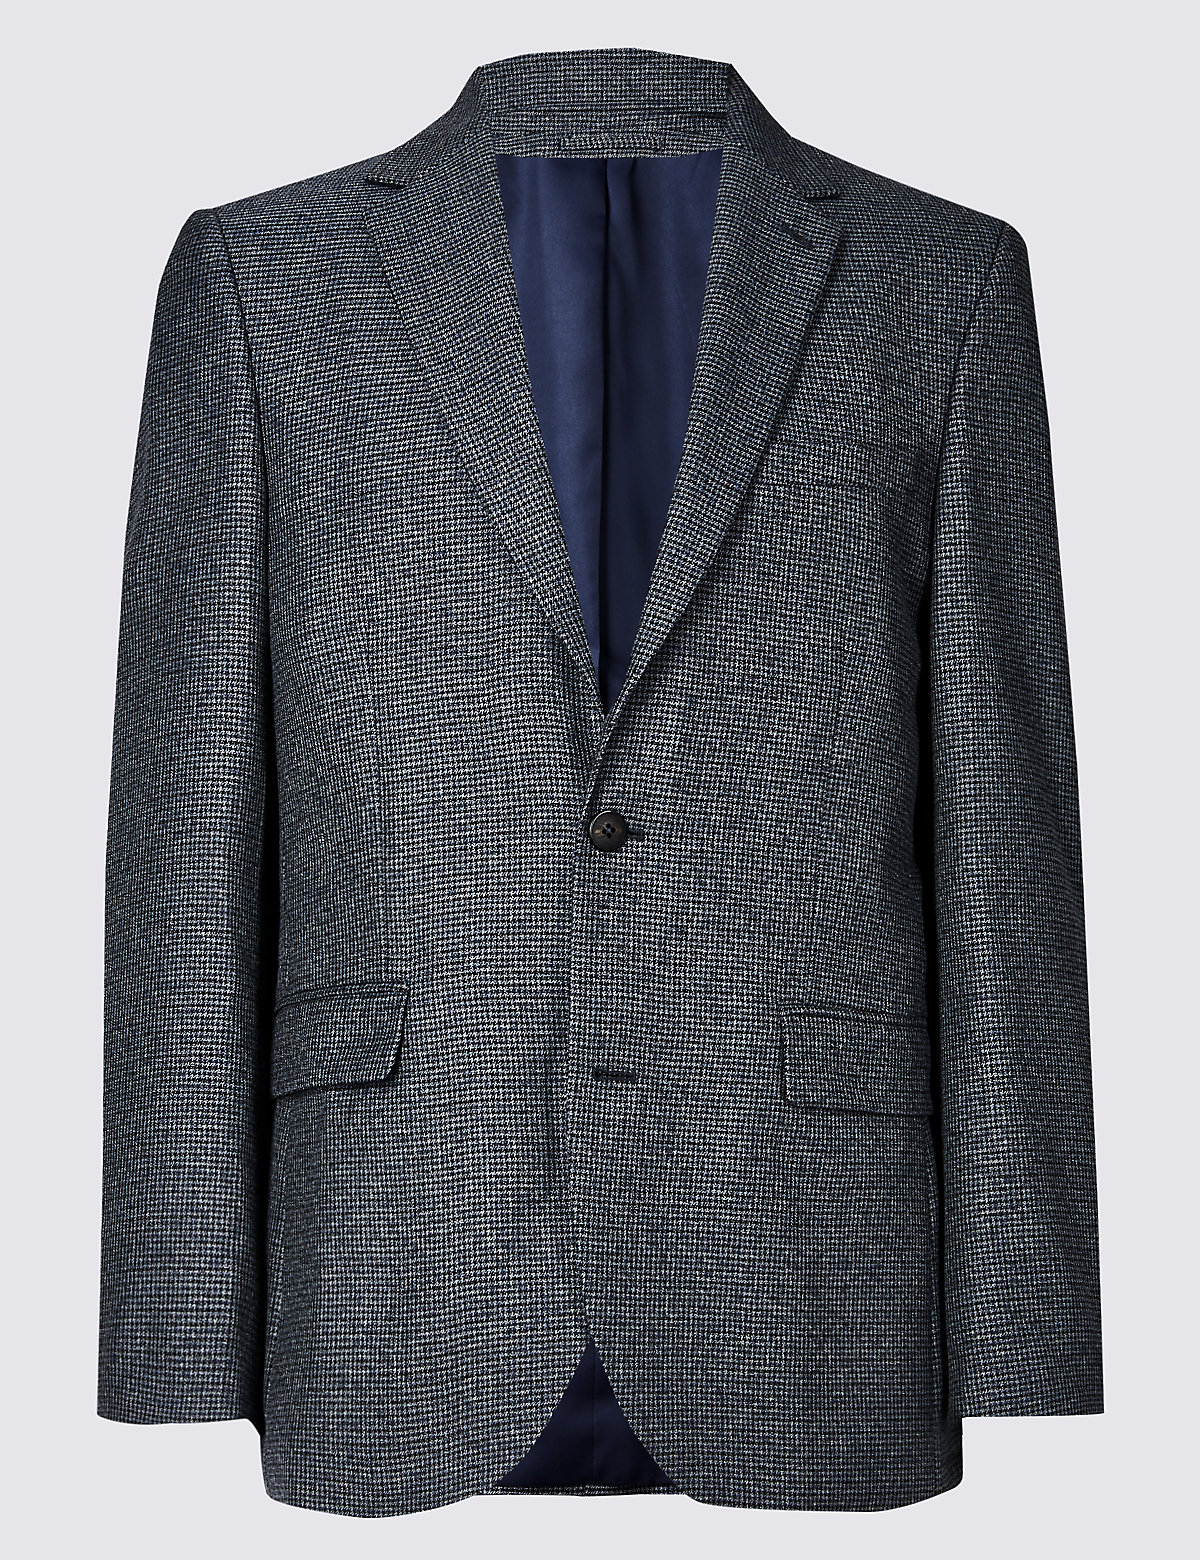 Marks & Spencer Grey Blue Textured Tailored Fit Jacket